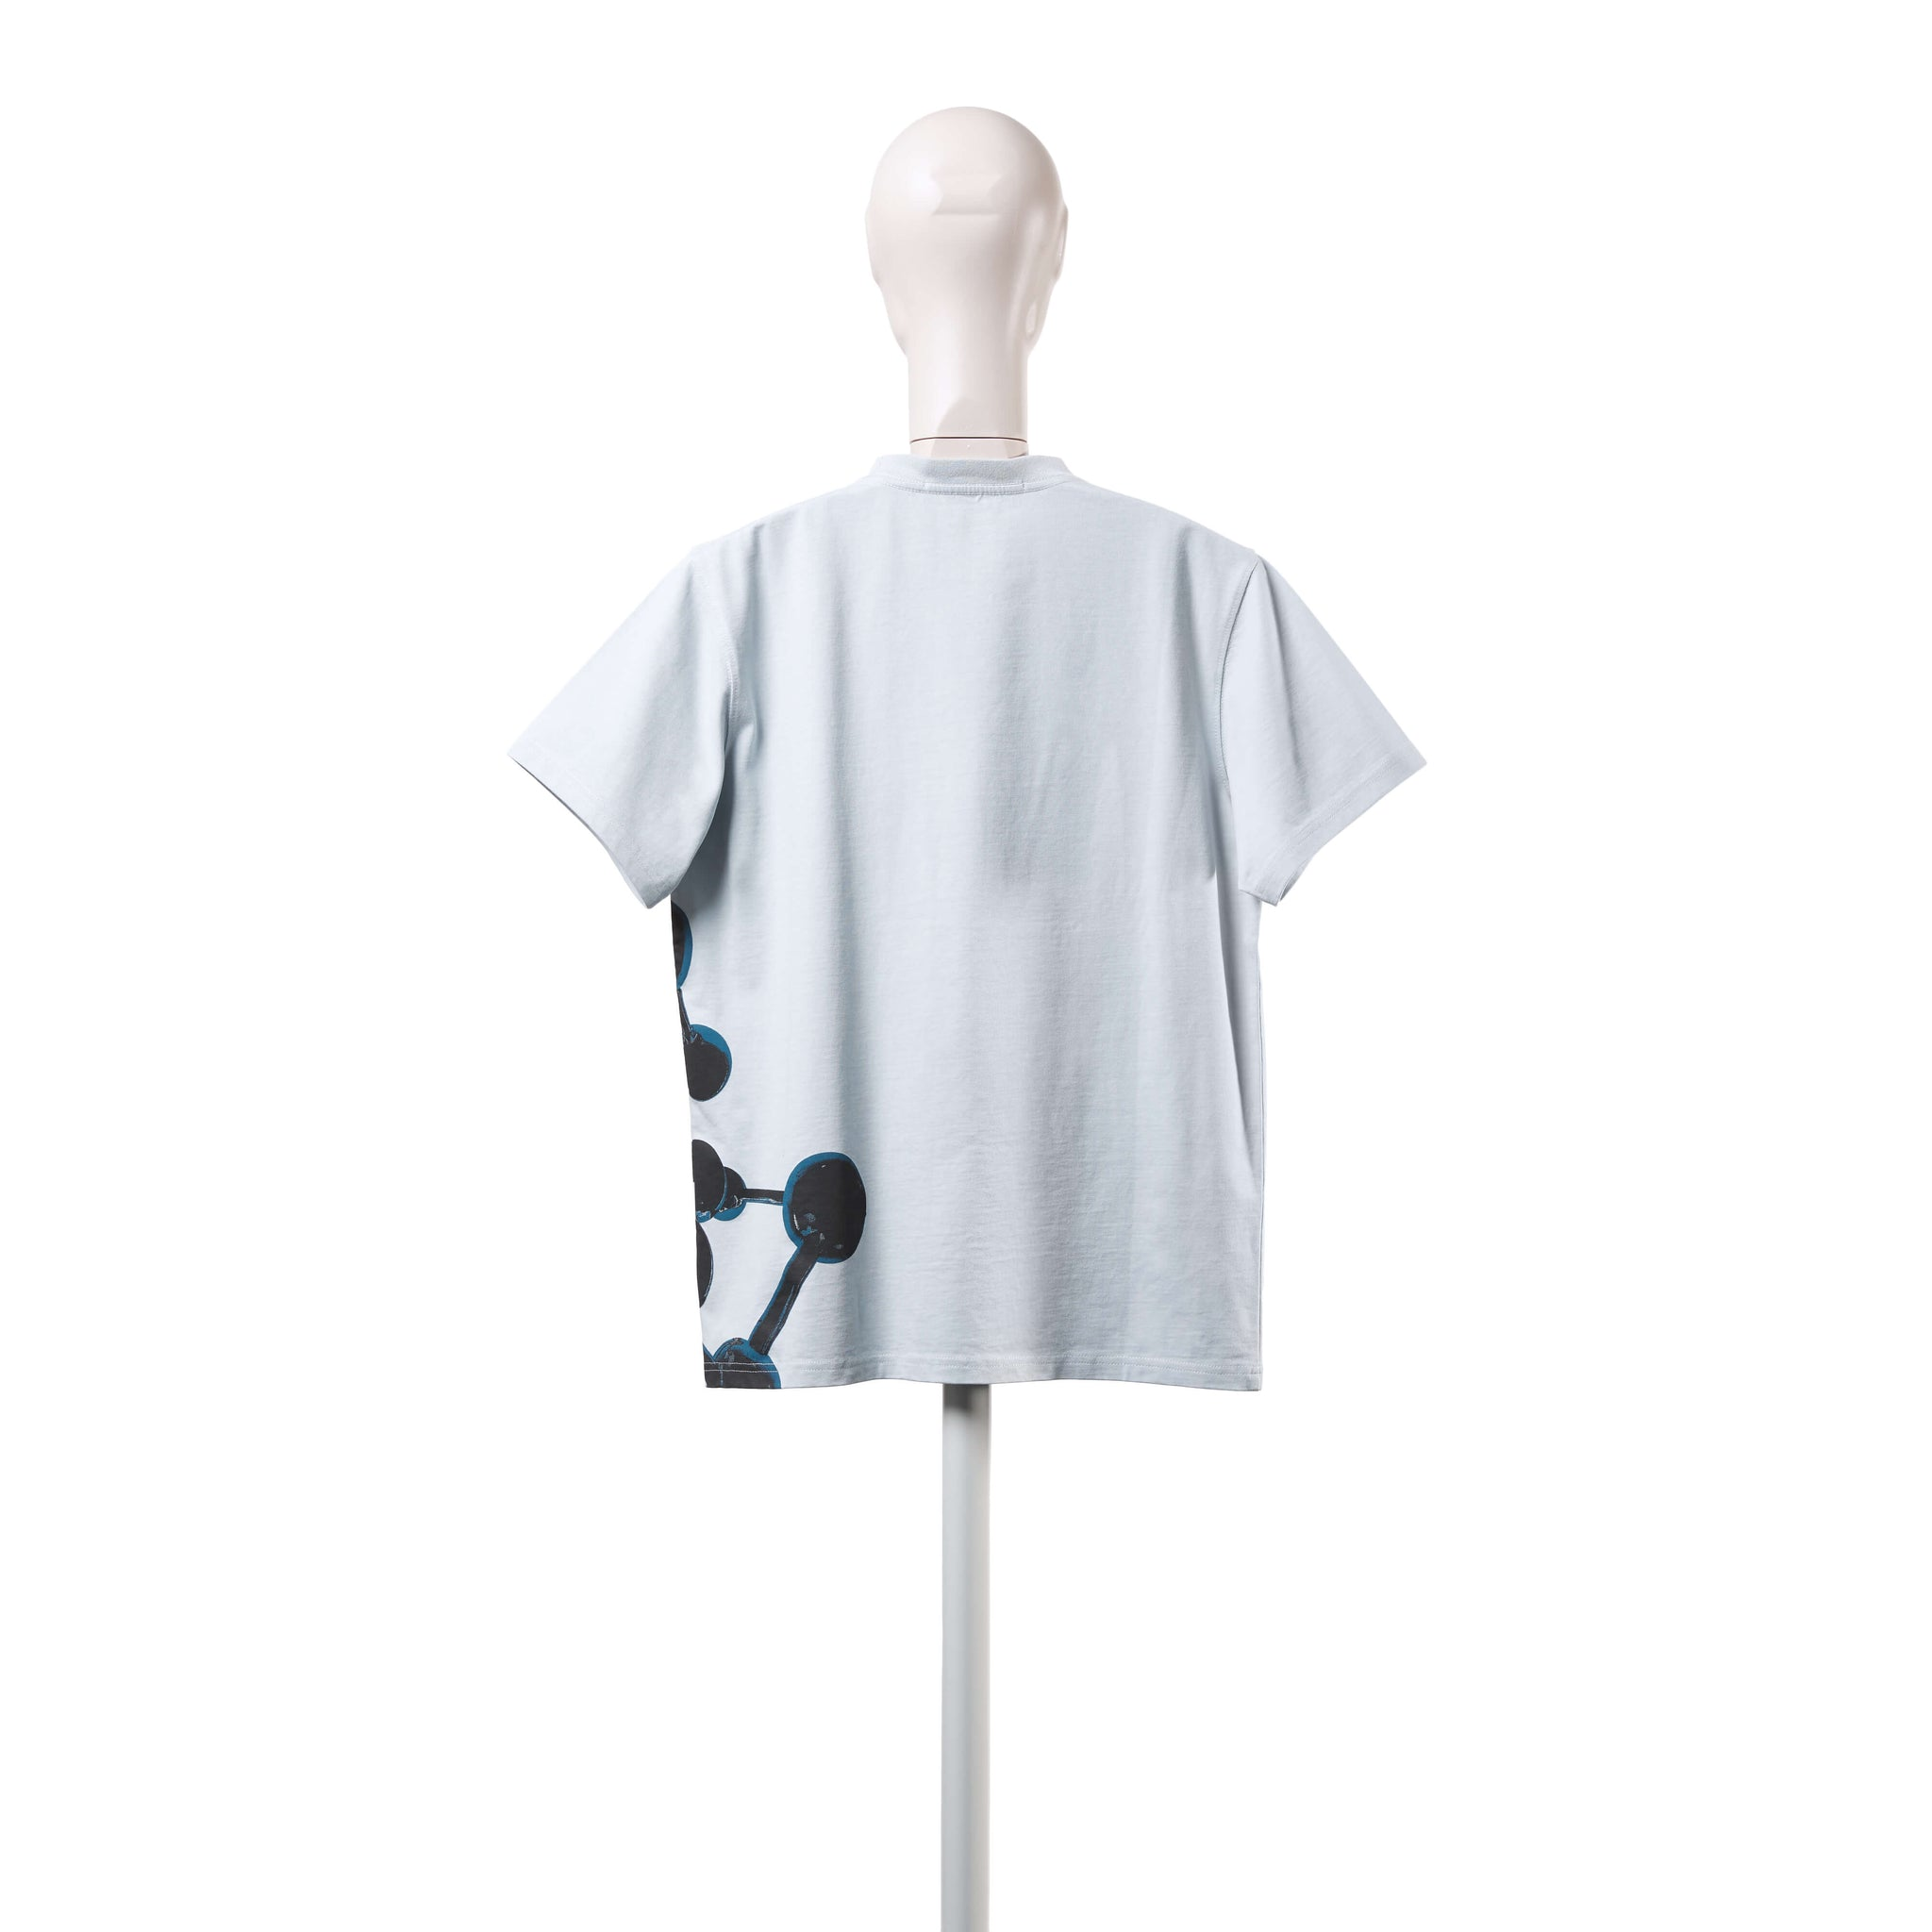 AFFIX WORKS AFFX WRKS ZODIAK T-SHIRT POWDER BLUE